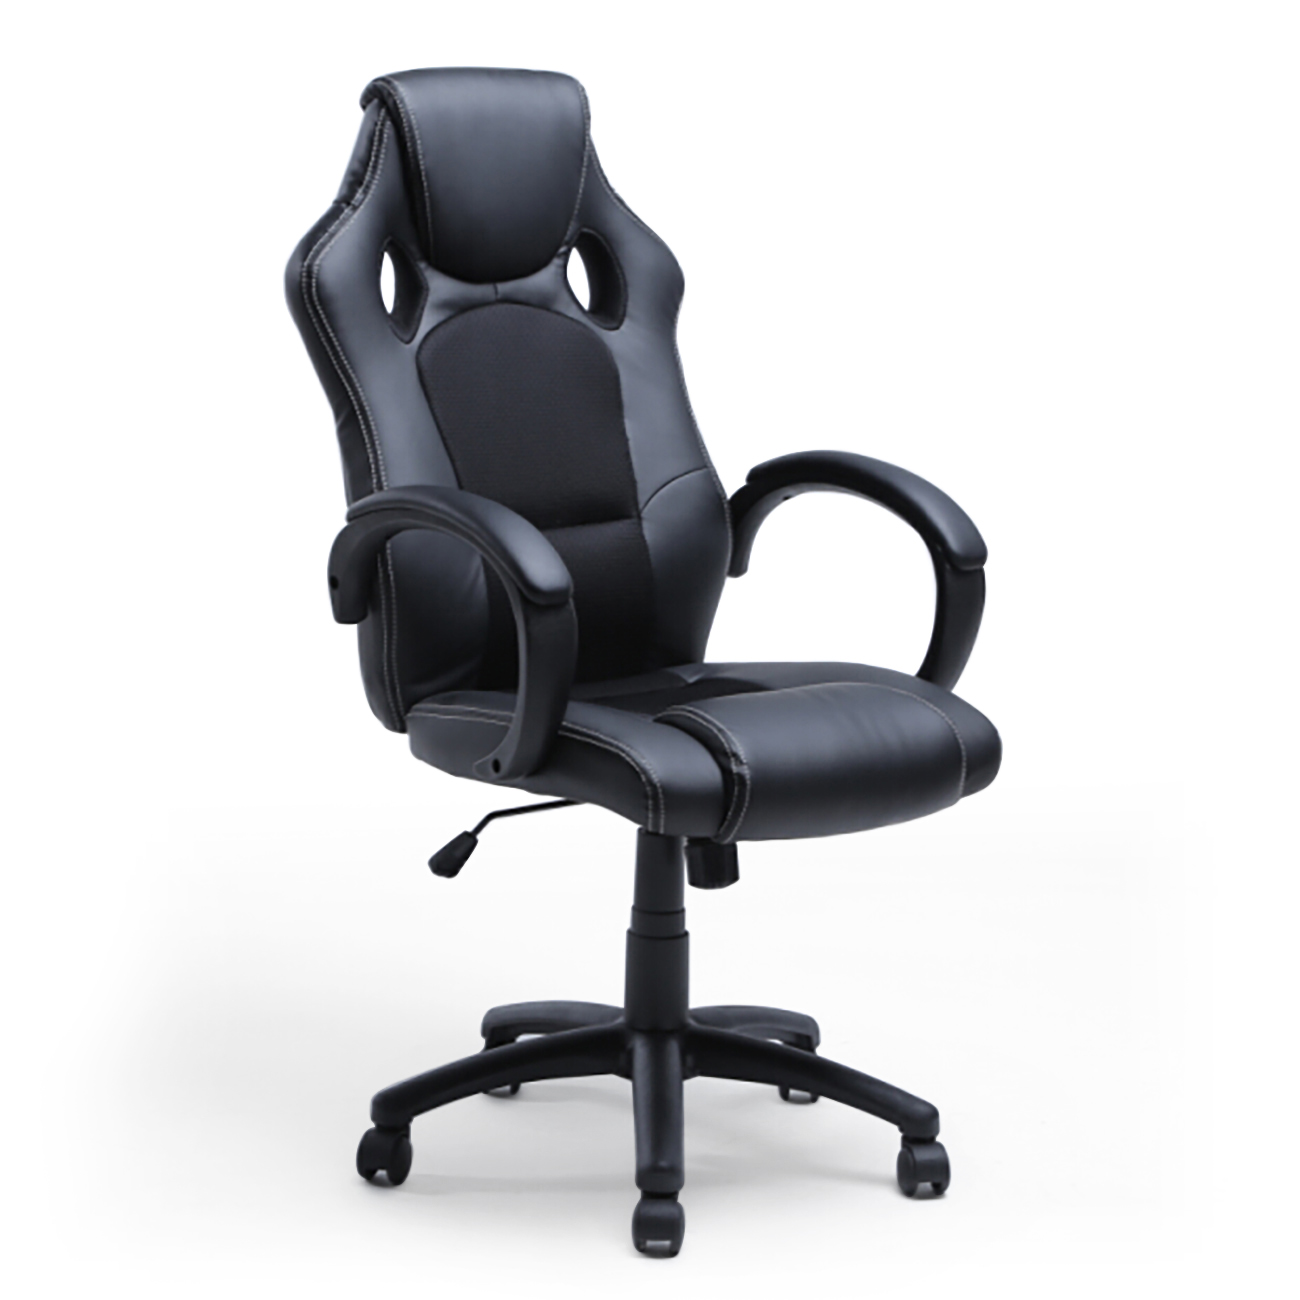 racing office chairs swing chair jeddah high back race car style bucket seat desk